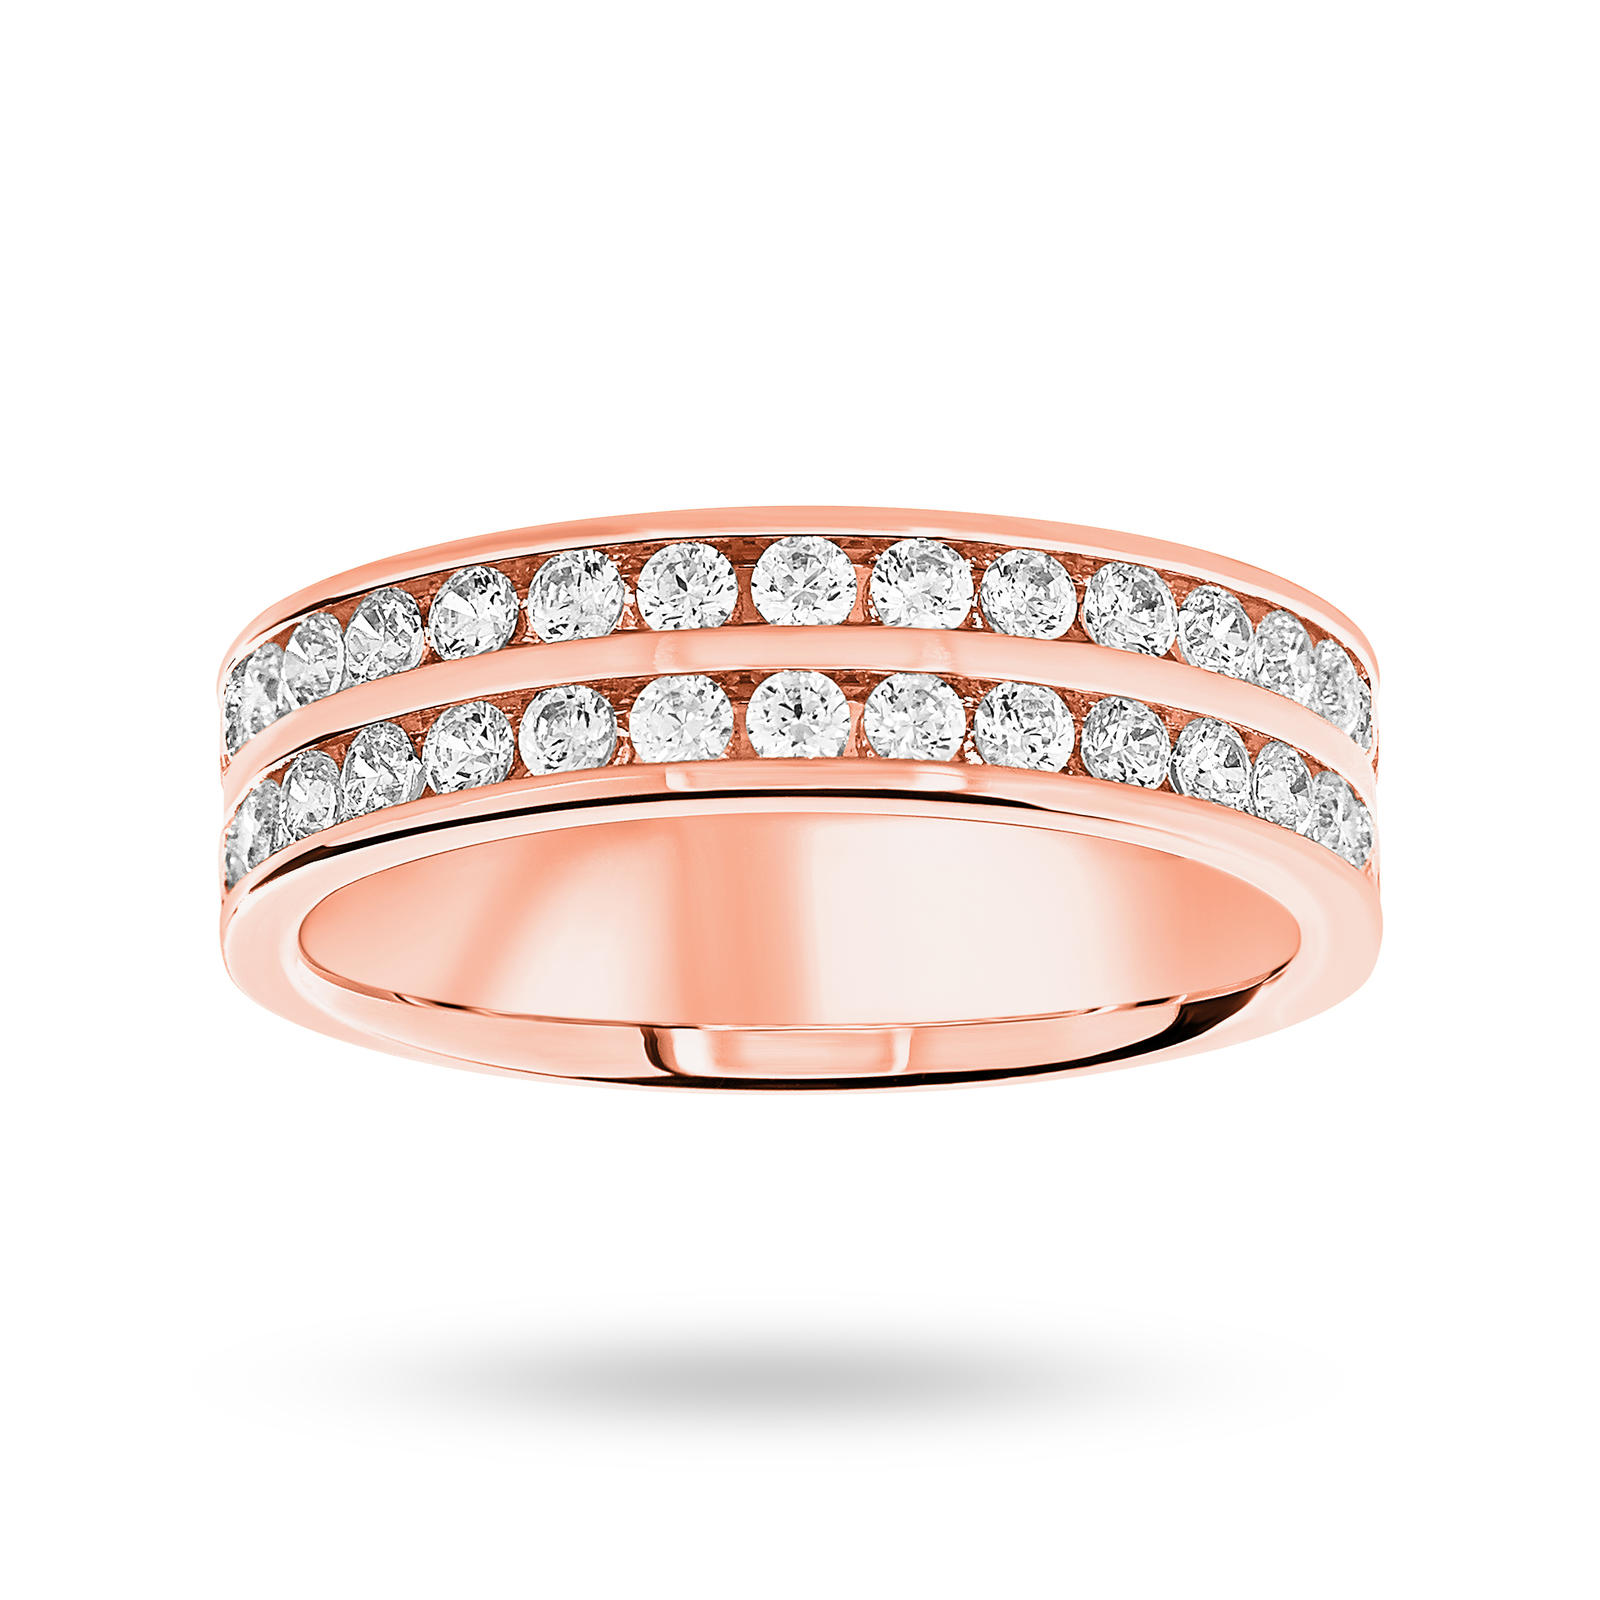 18 Carat Rose Gold 0.75 Carat Brilliant Cut 2 Row Half Eternity Ring